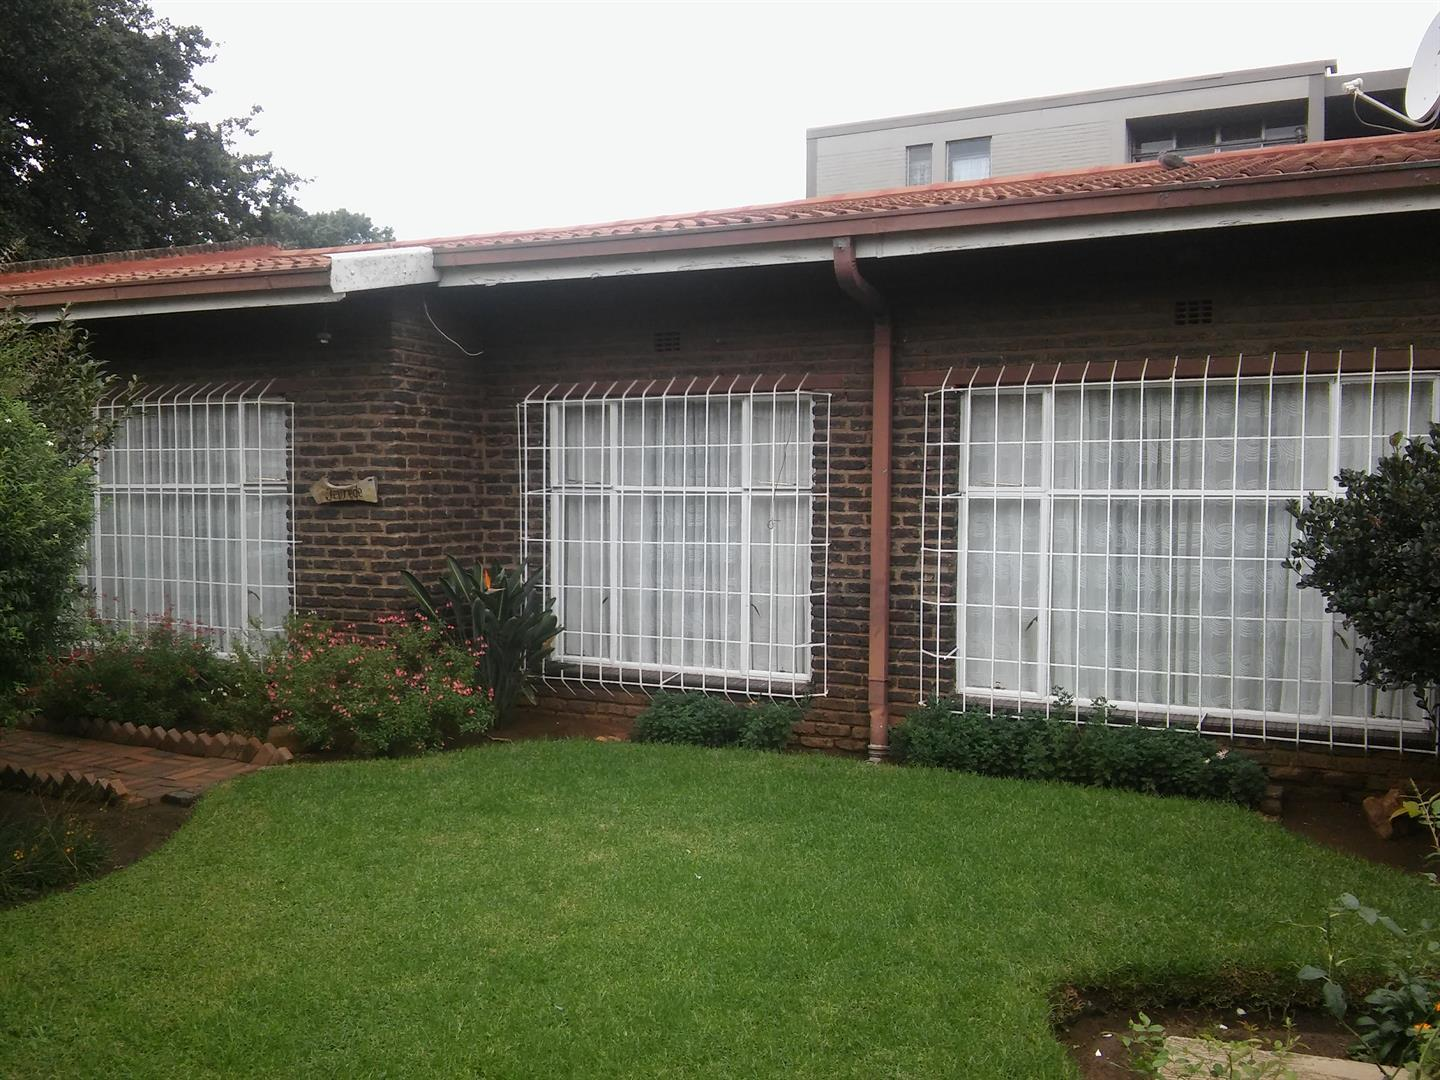 Vanderbijlpark, Vanderbijlpark Cw3 Property  | Houses For Sale Vanderbijlpark Cw3, Vanderbijlpark Cw3, Townhouse 2 bedrooms property for sale Price:695,000